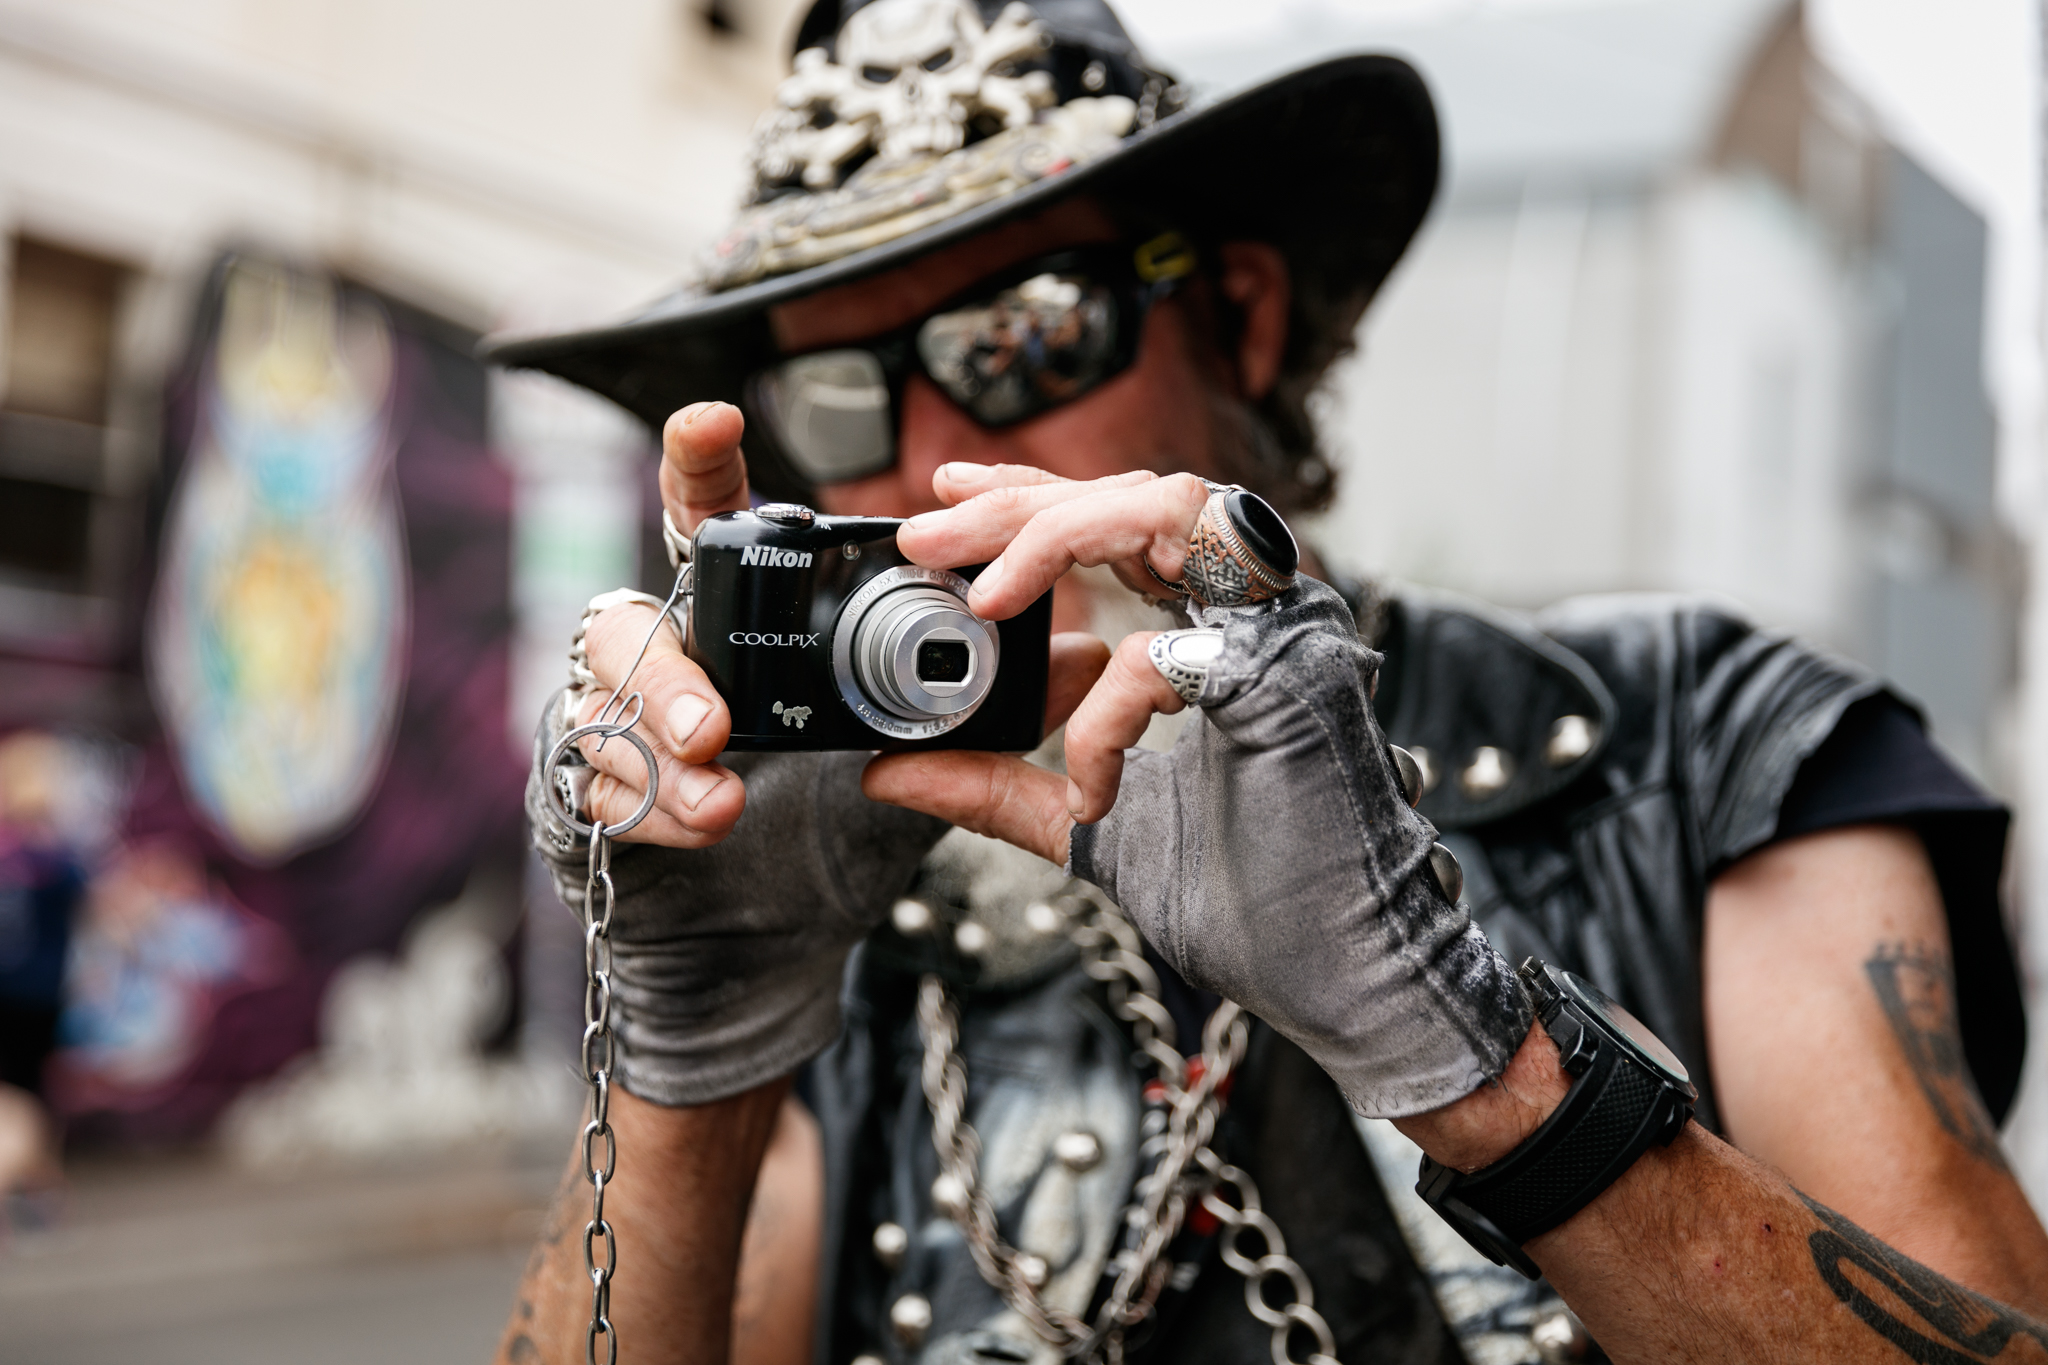 street-man-with-his-own-camera.jpg